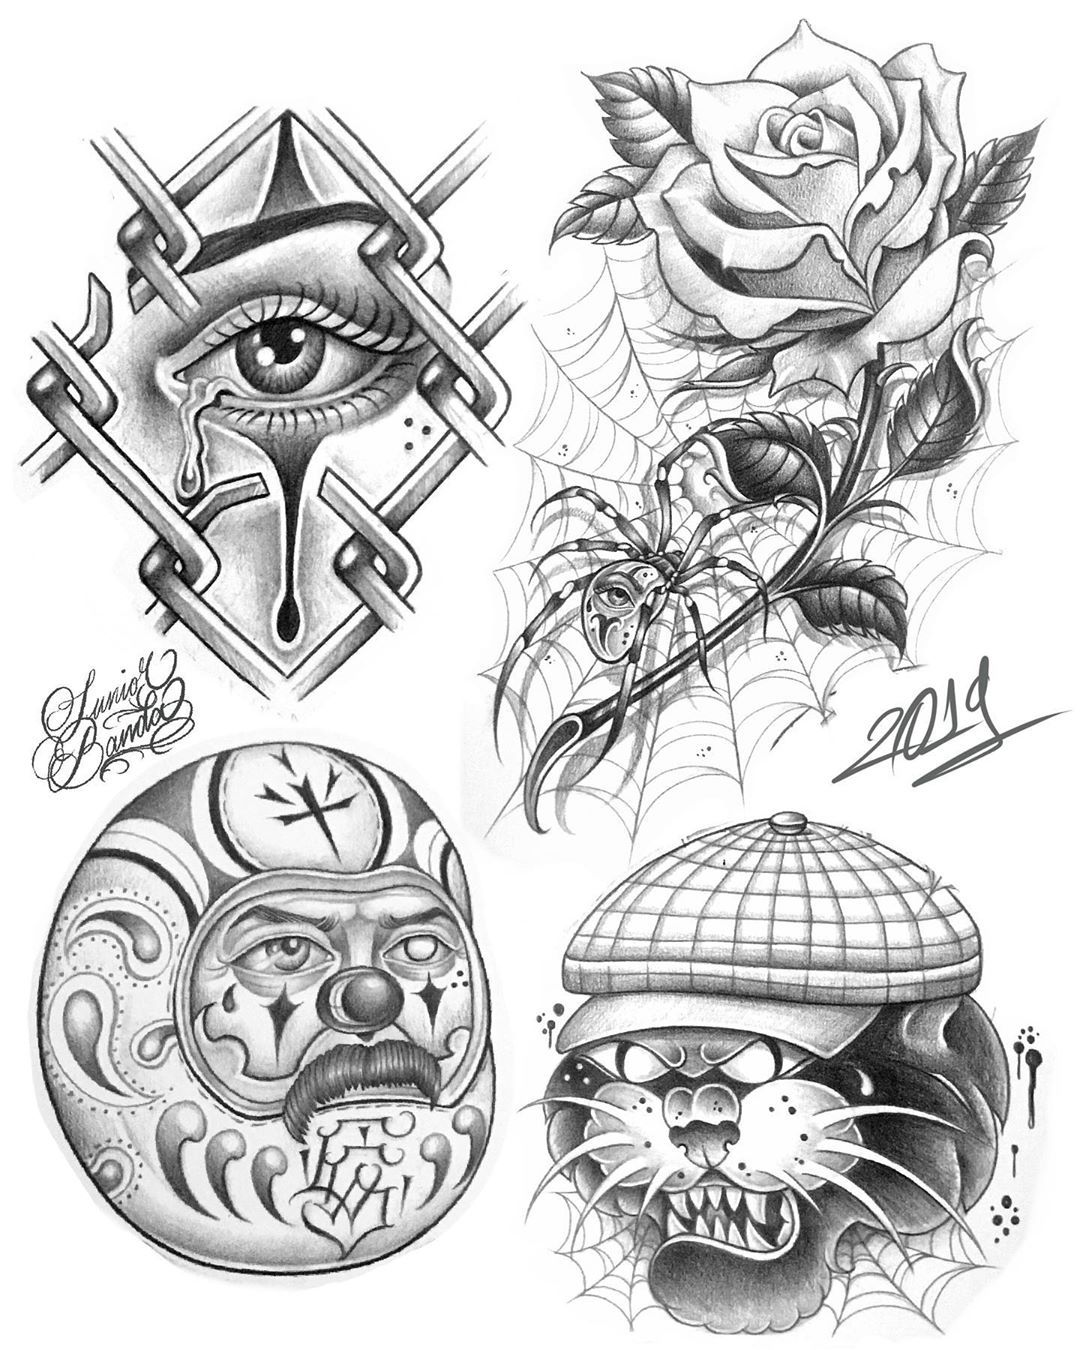 Do Not Copy Please Disenos Disponibles Available Designs At Masterinktattoostudio1 Nag Chicano Art Tattoos Chicano Style Tattoo Chicano Tattoos